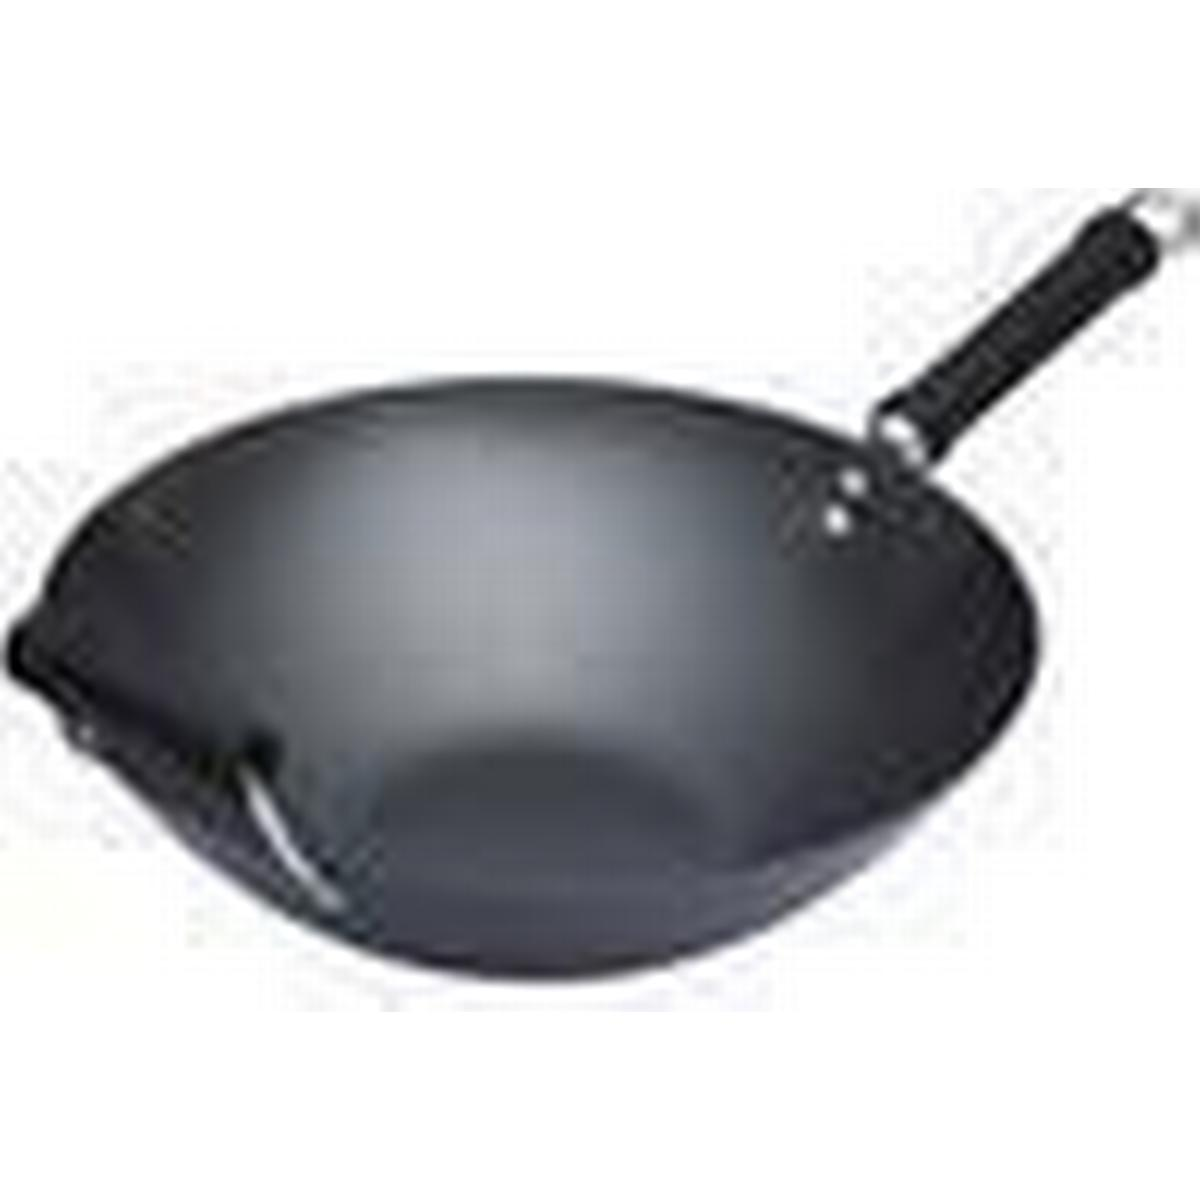 Compare best Kitchencraft Cookware prices on the market - PriceRunner